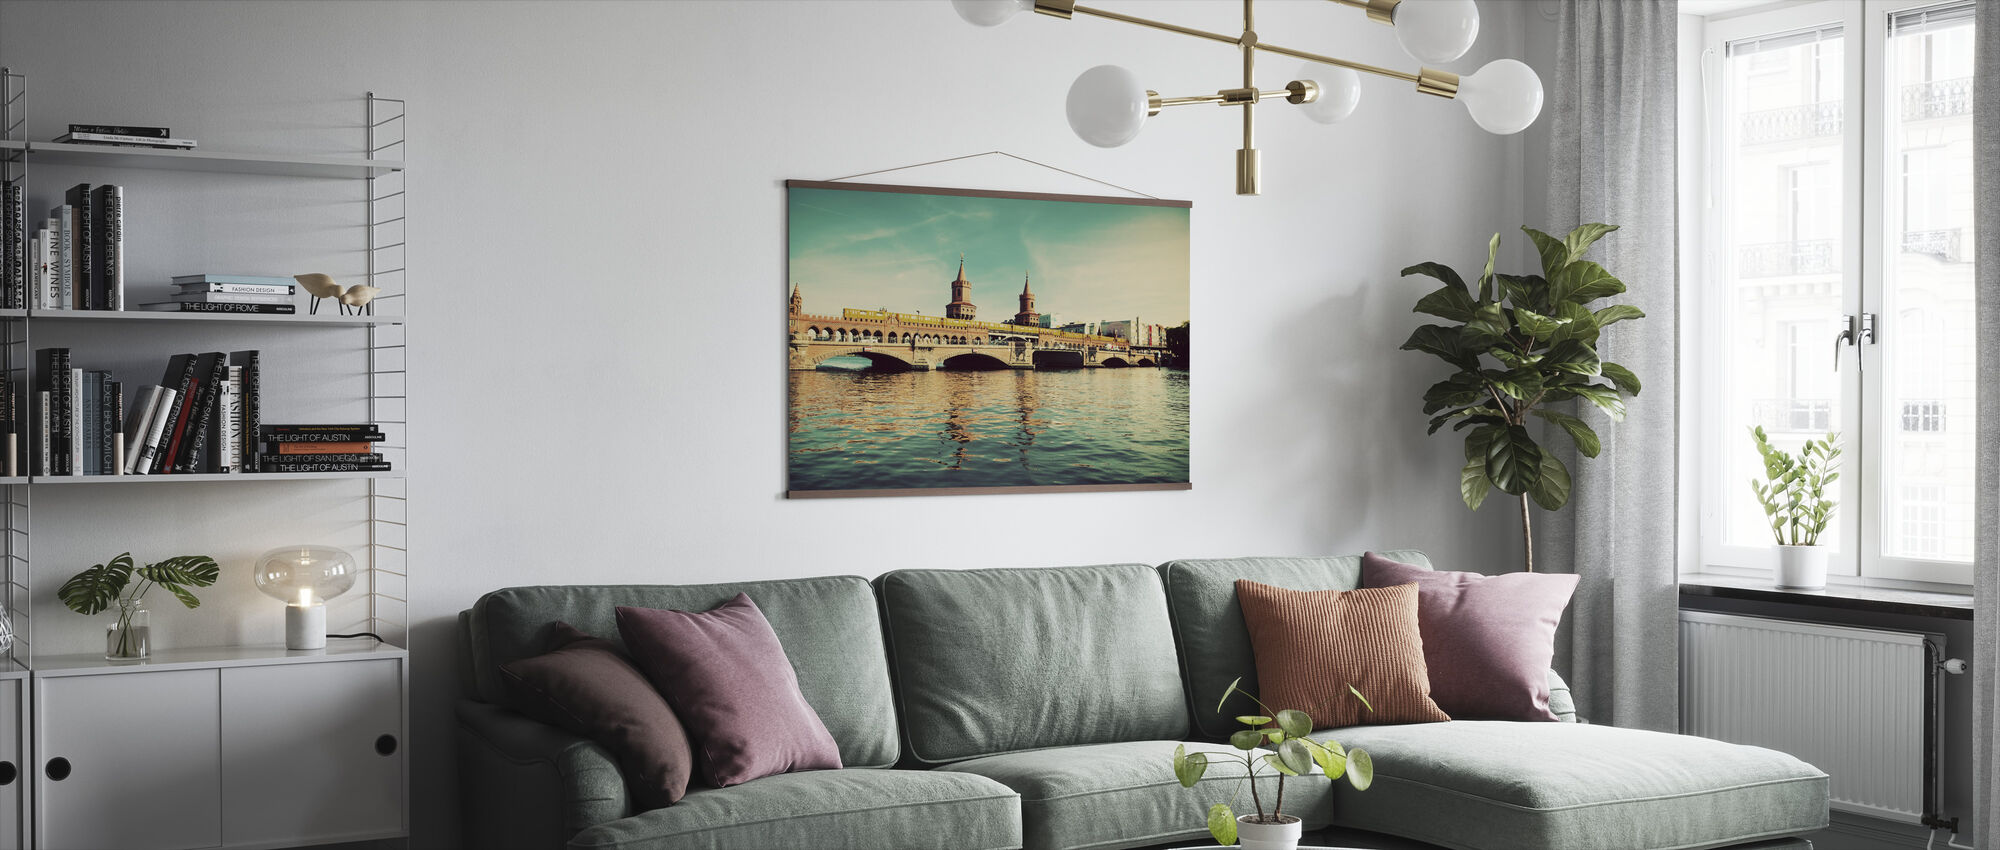 The Oberbaum Bridge and River Spree in Berlin - Poster - Living Room